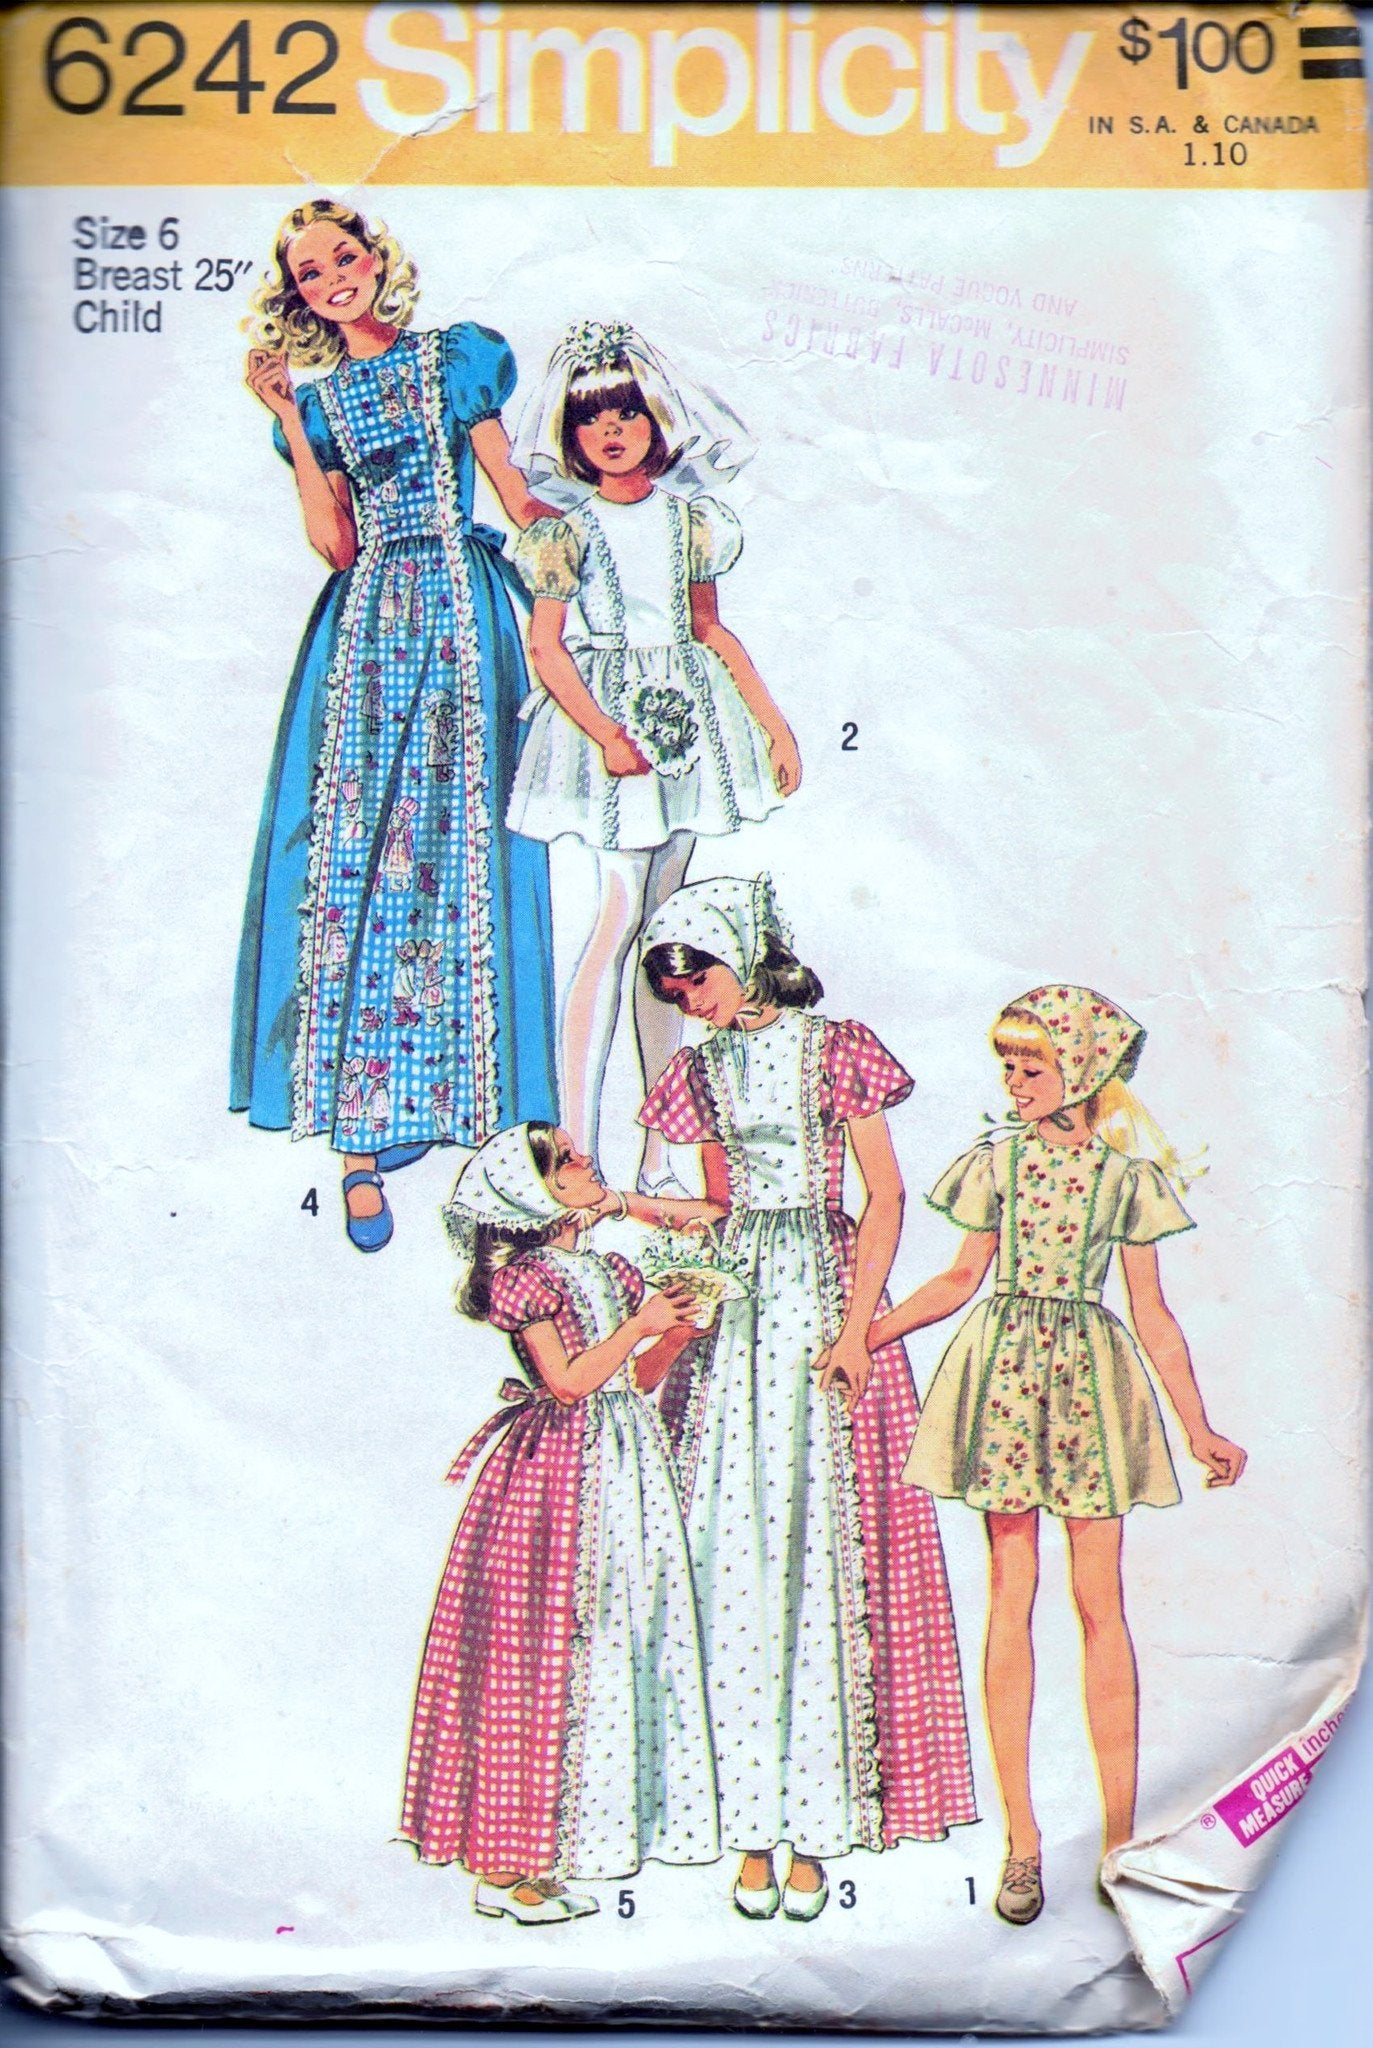 Simplicity 6242 Girls' Long Short Dress First Communion Scarf Vintage 70's Sewing Pattern - VintageStitching - Vintage Sewing Patterns